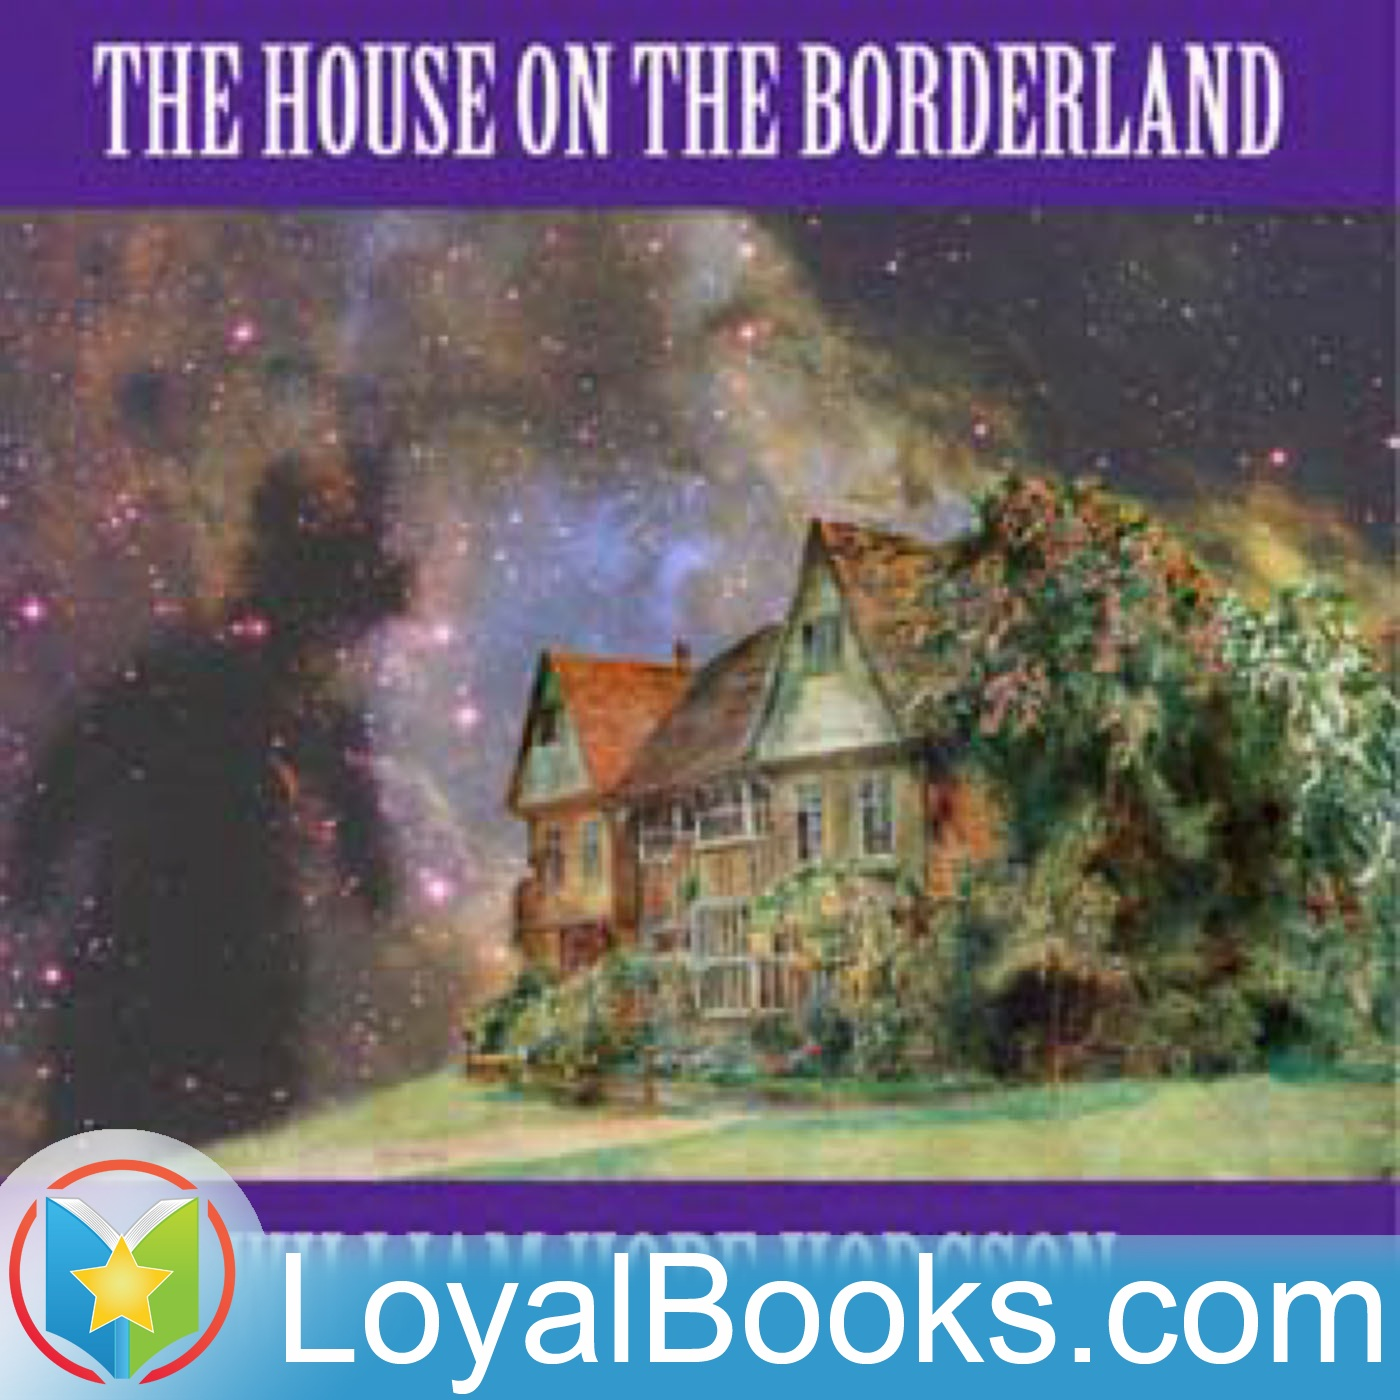 <![CDATA[The House on the Borderland by William Hope Hodgson]]>